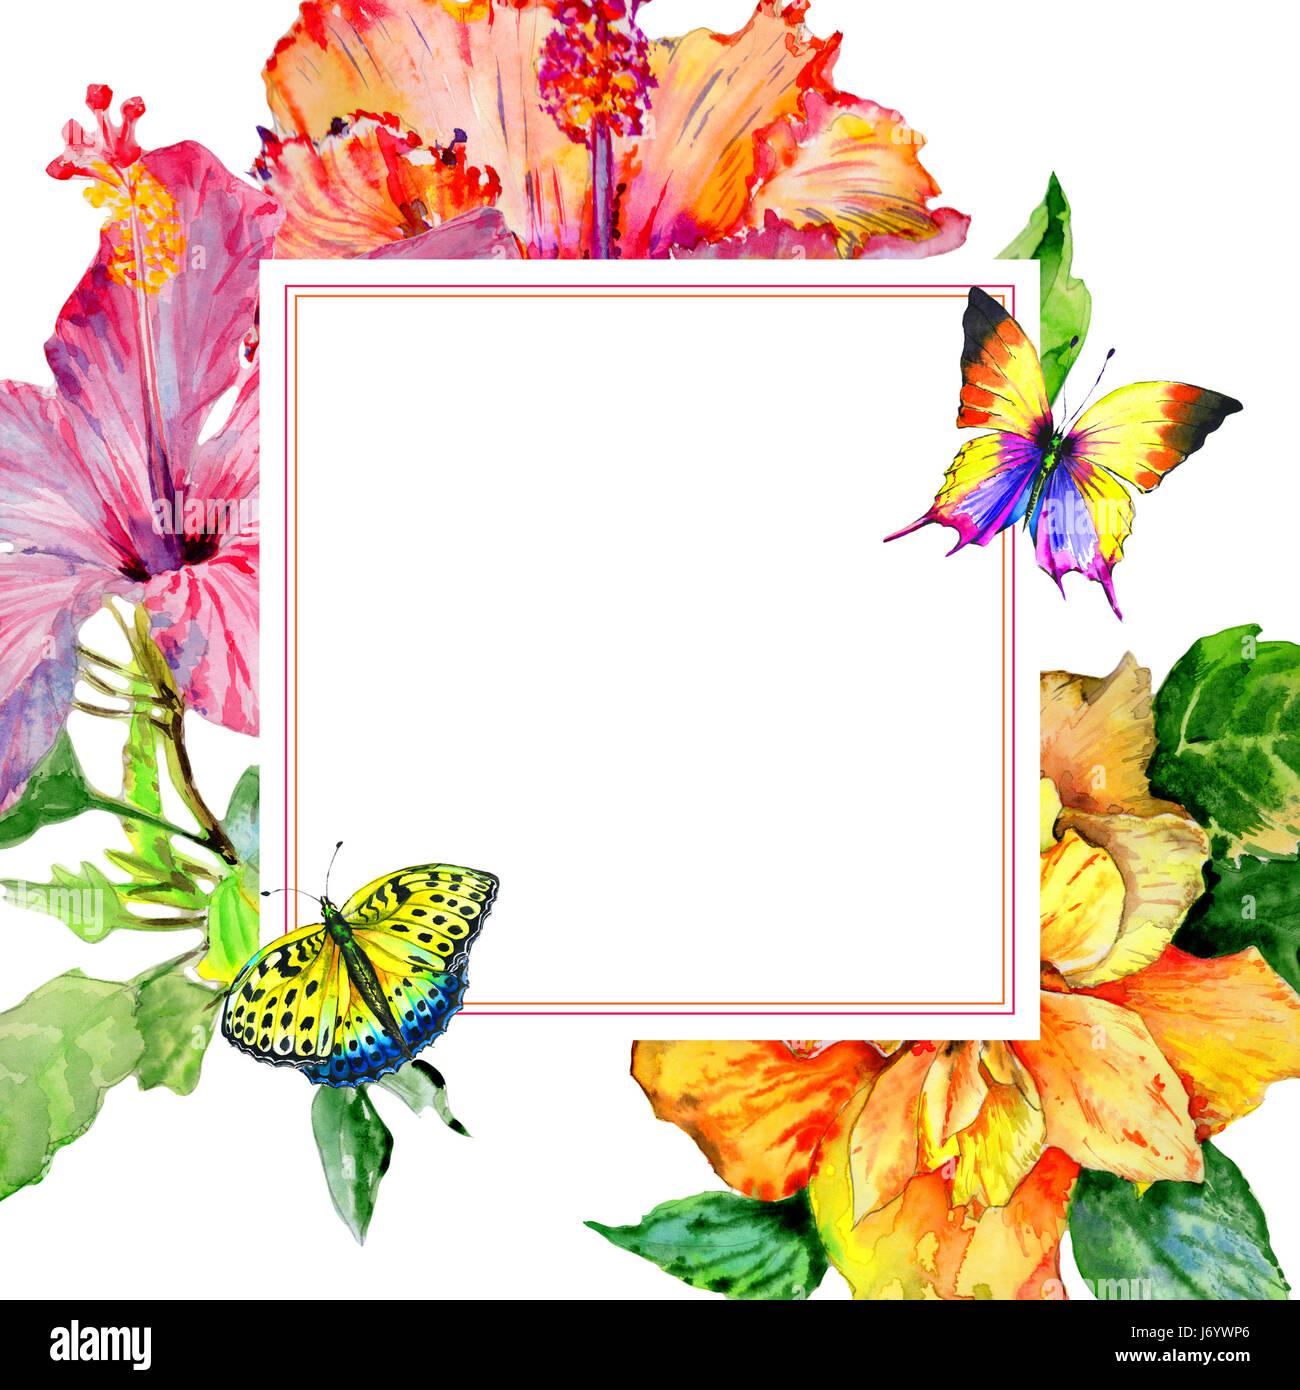 Wildflower Hibiscus Flower Frame In A Watercolor Style Isolated Aquarelle Wild For Background Texture Wrapper Pattern Or Border